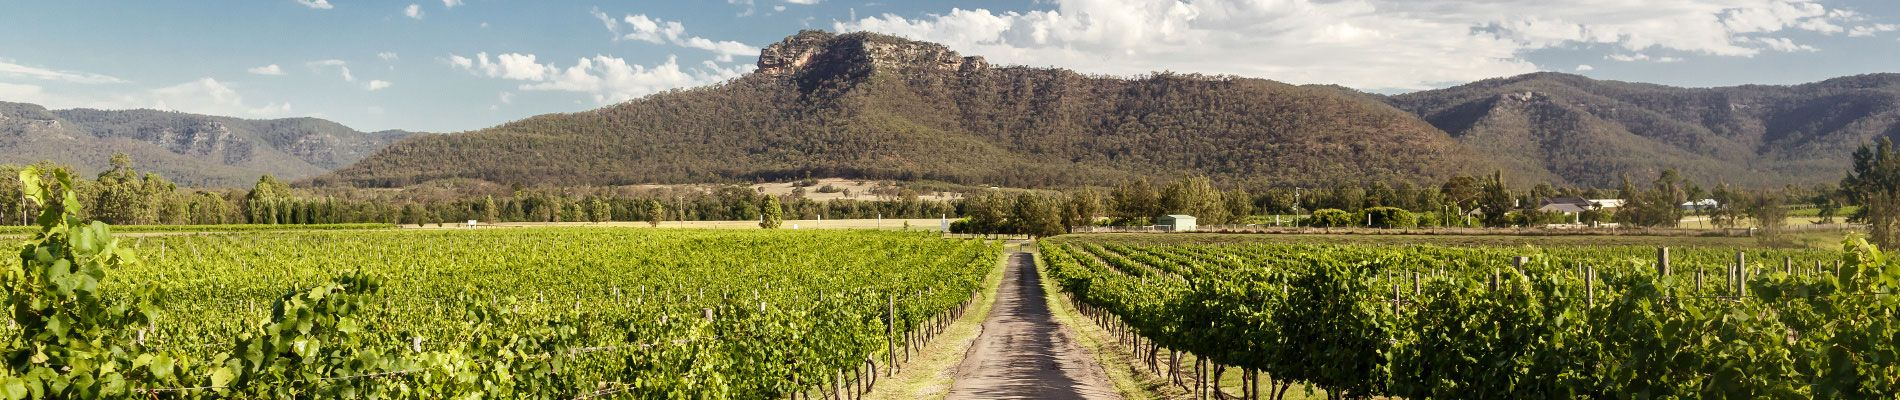 australie-hunter-valley-vineyards-st